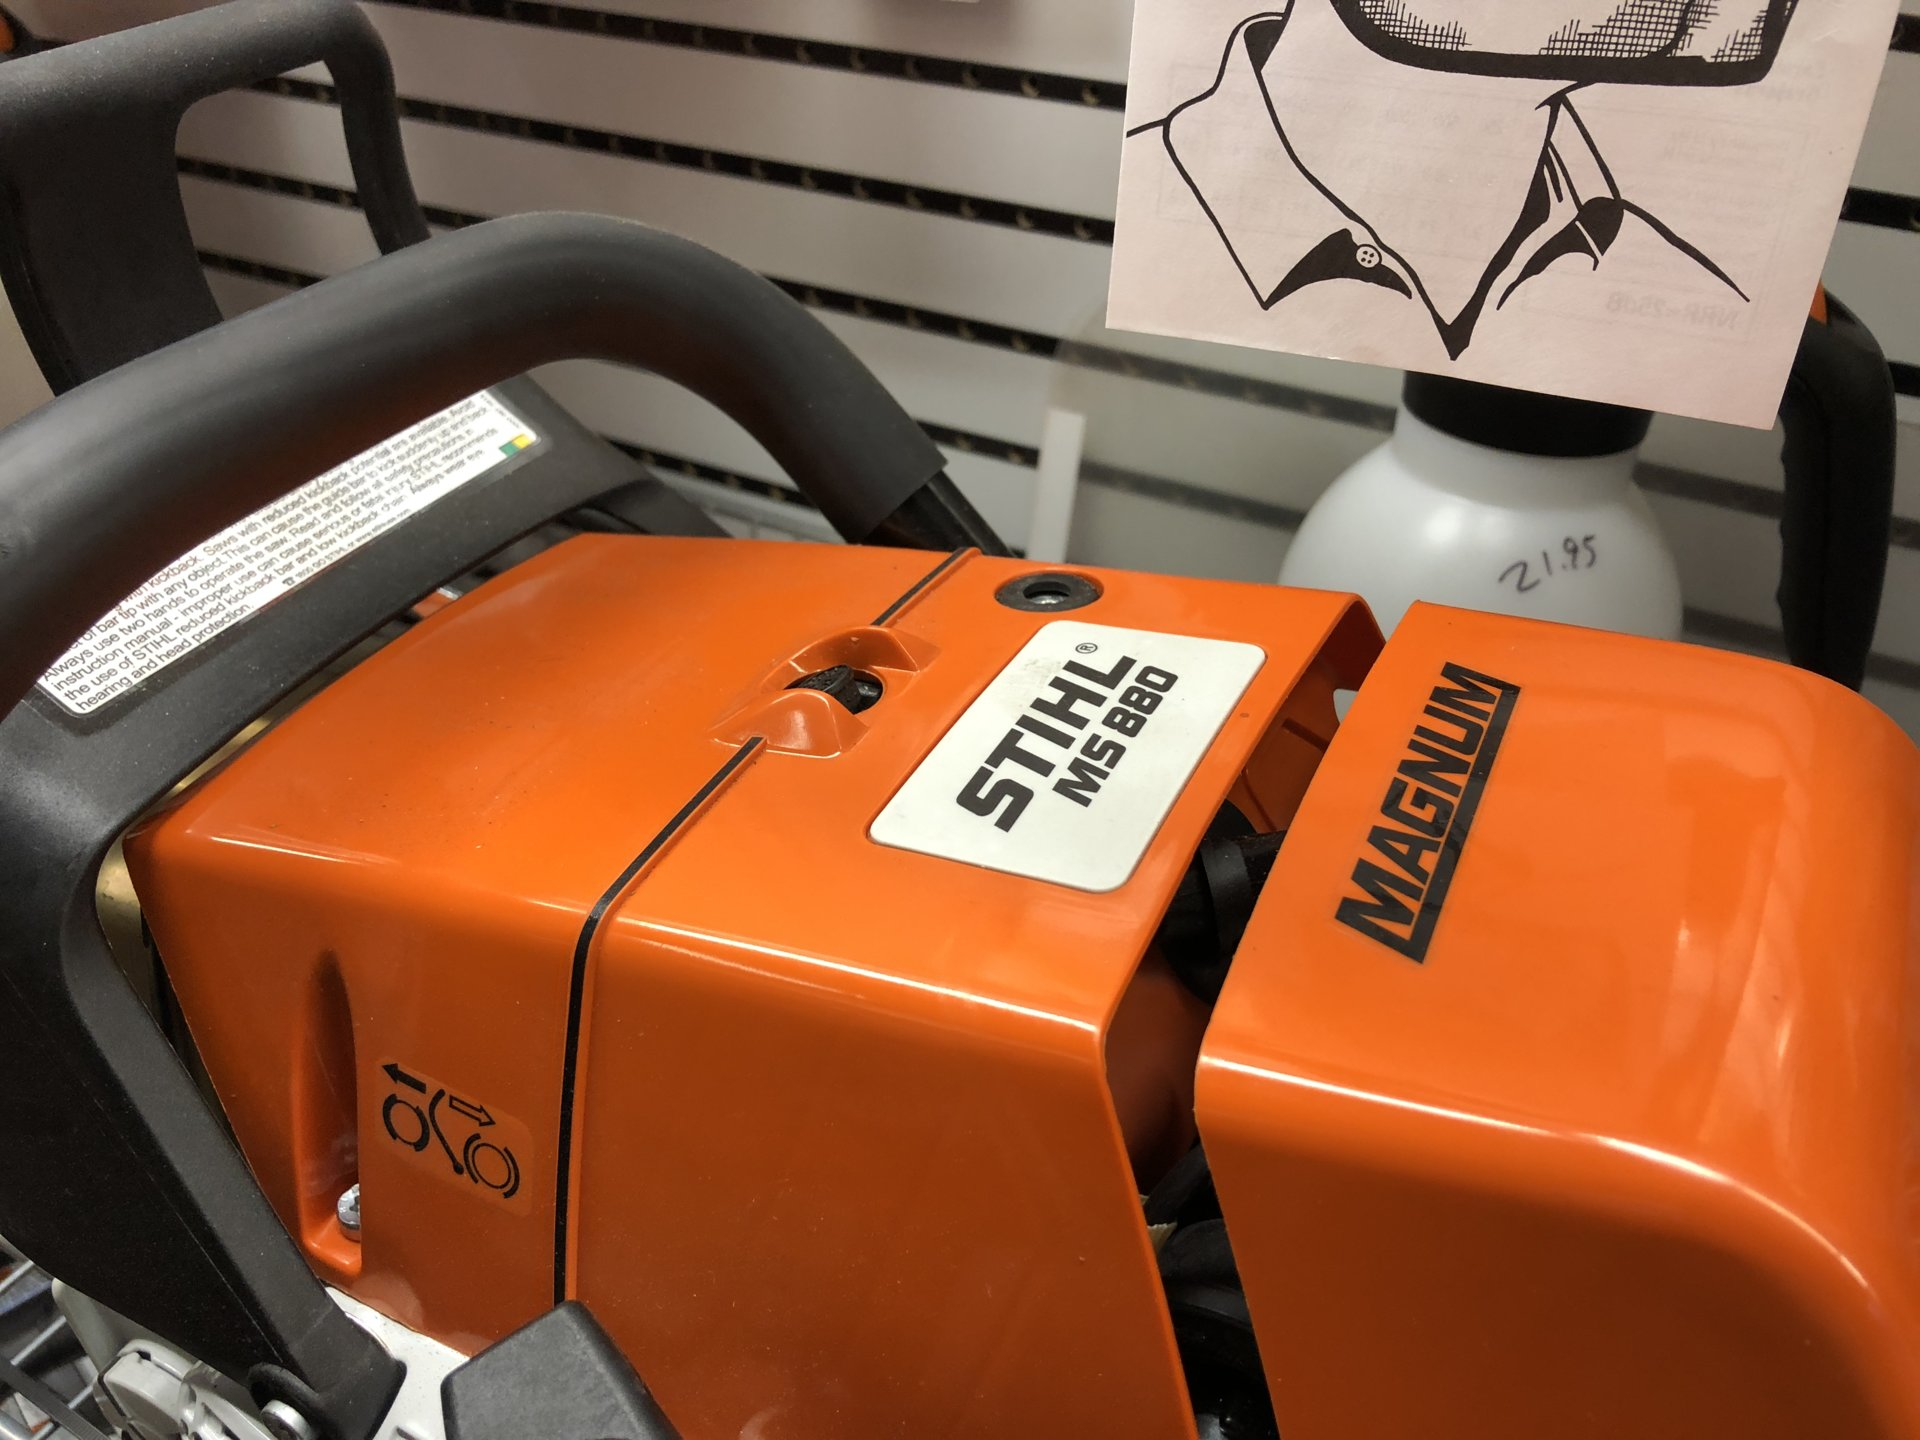 chain saw recommendations | Page 2 | IH8MUD Forum